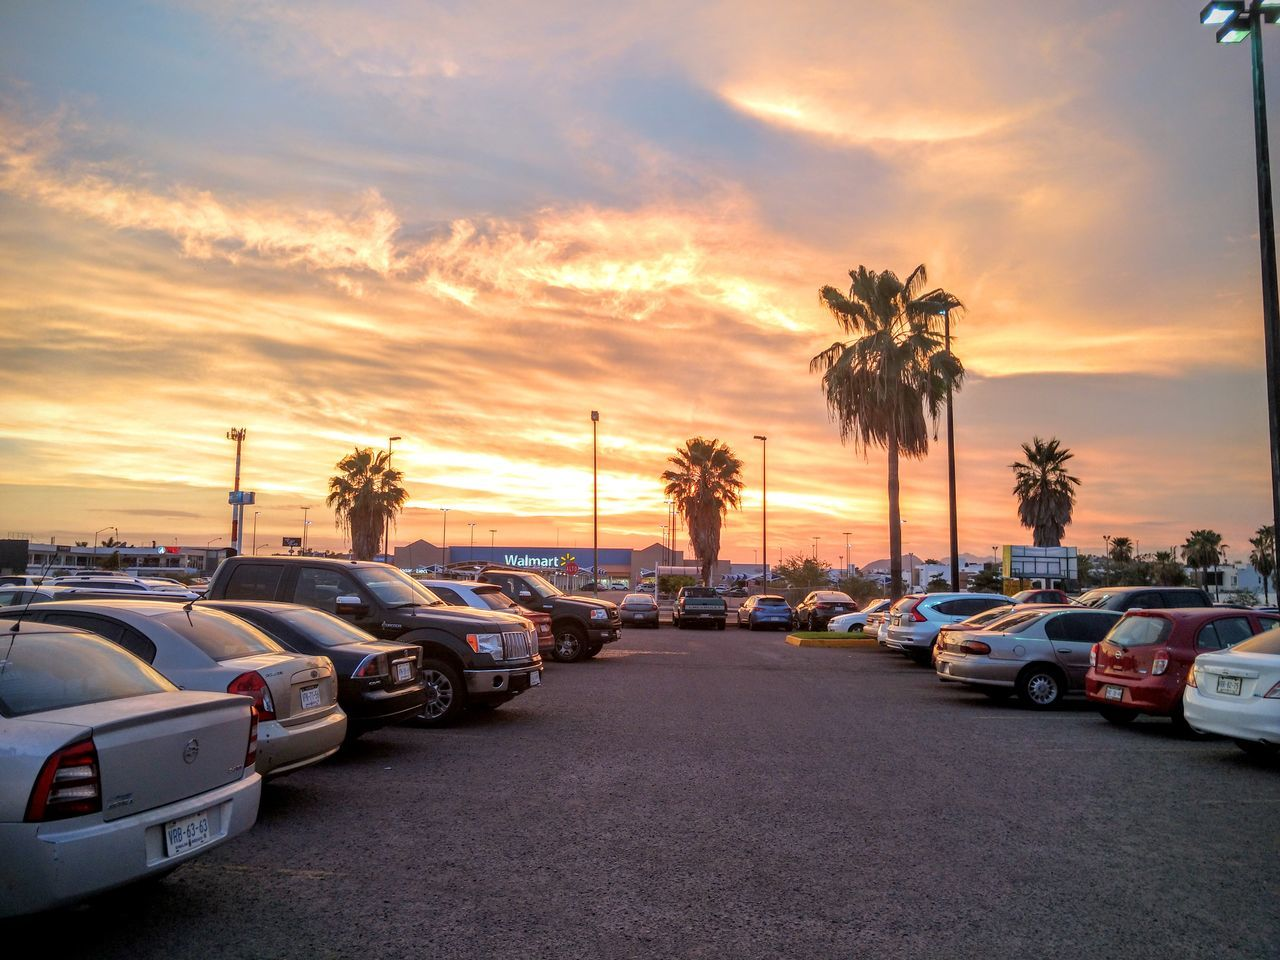 sunset, car, palm tree, sky, transportation, land vehicle, tree, mode of transport, no people, road, outdoors, cloud - sky, nature, beach, scenics, beauty in nature, day